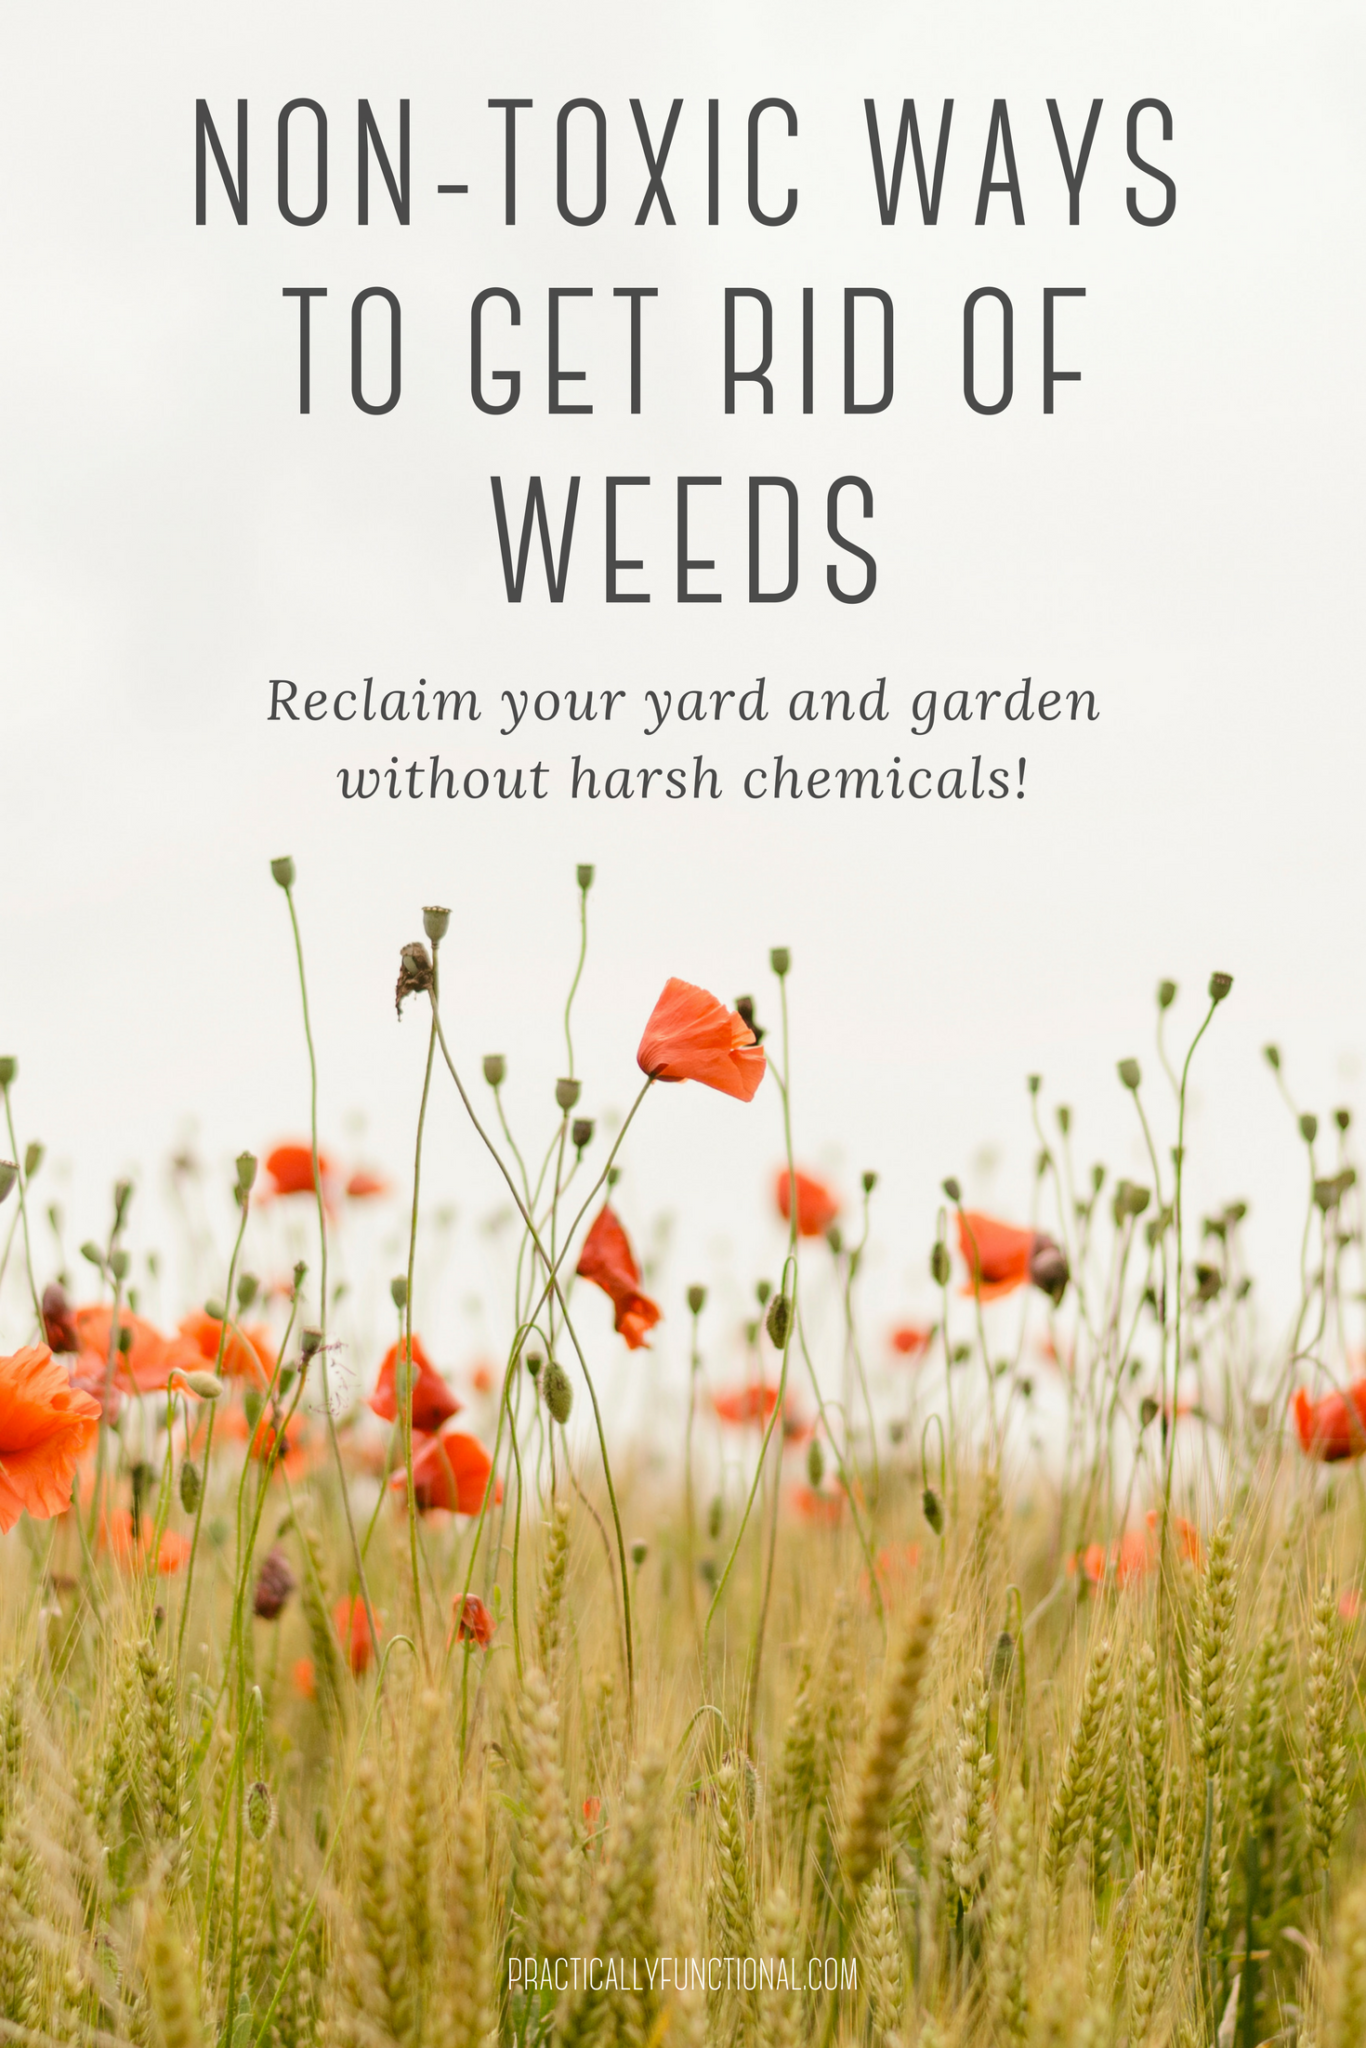 10 non-toxic ways to get rid of weeds